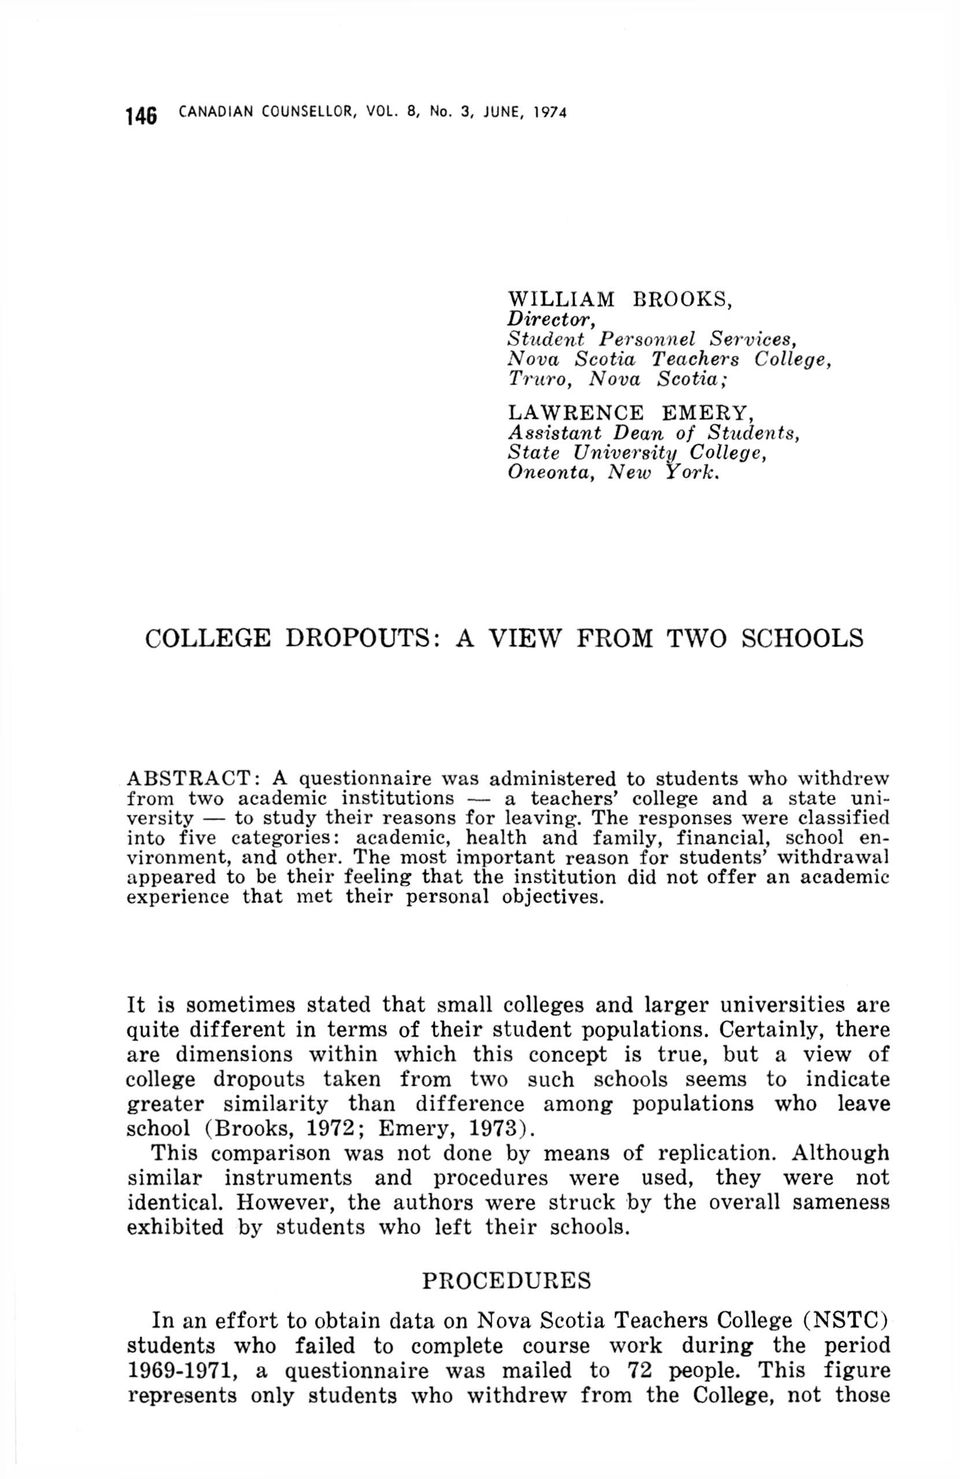 COLLEGE DROPOUTS: A VIEW FROM TWO SCHOOLS - PDF